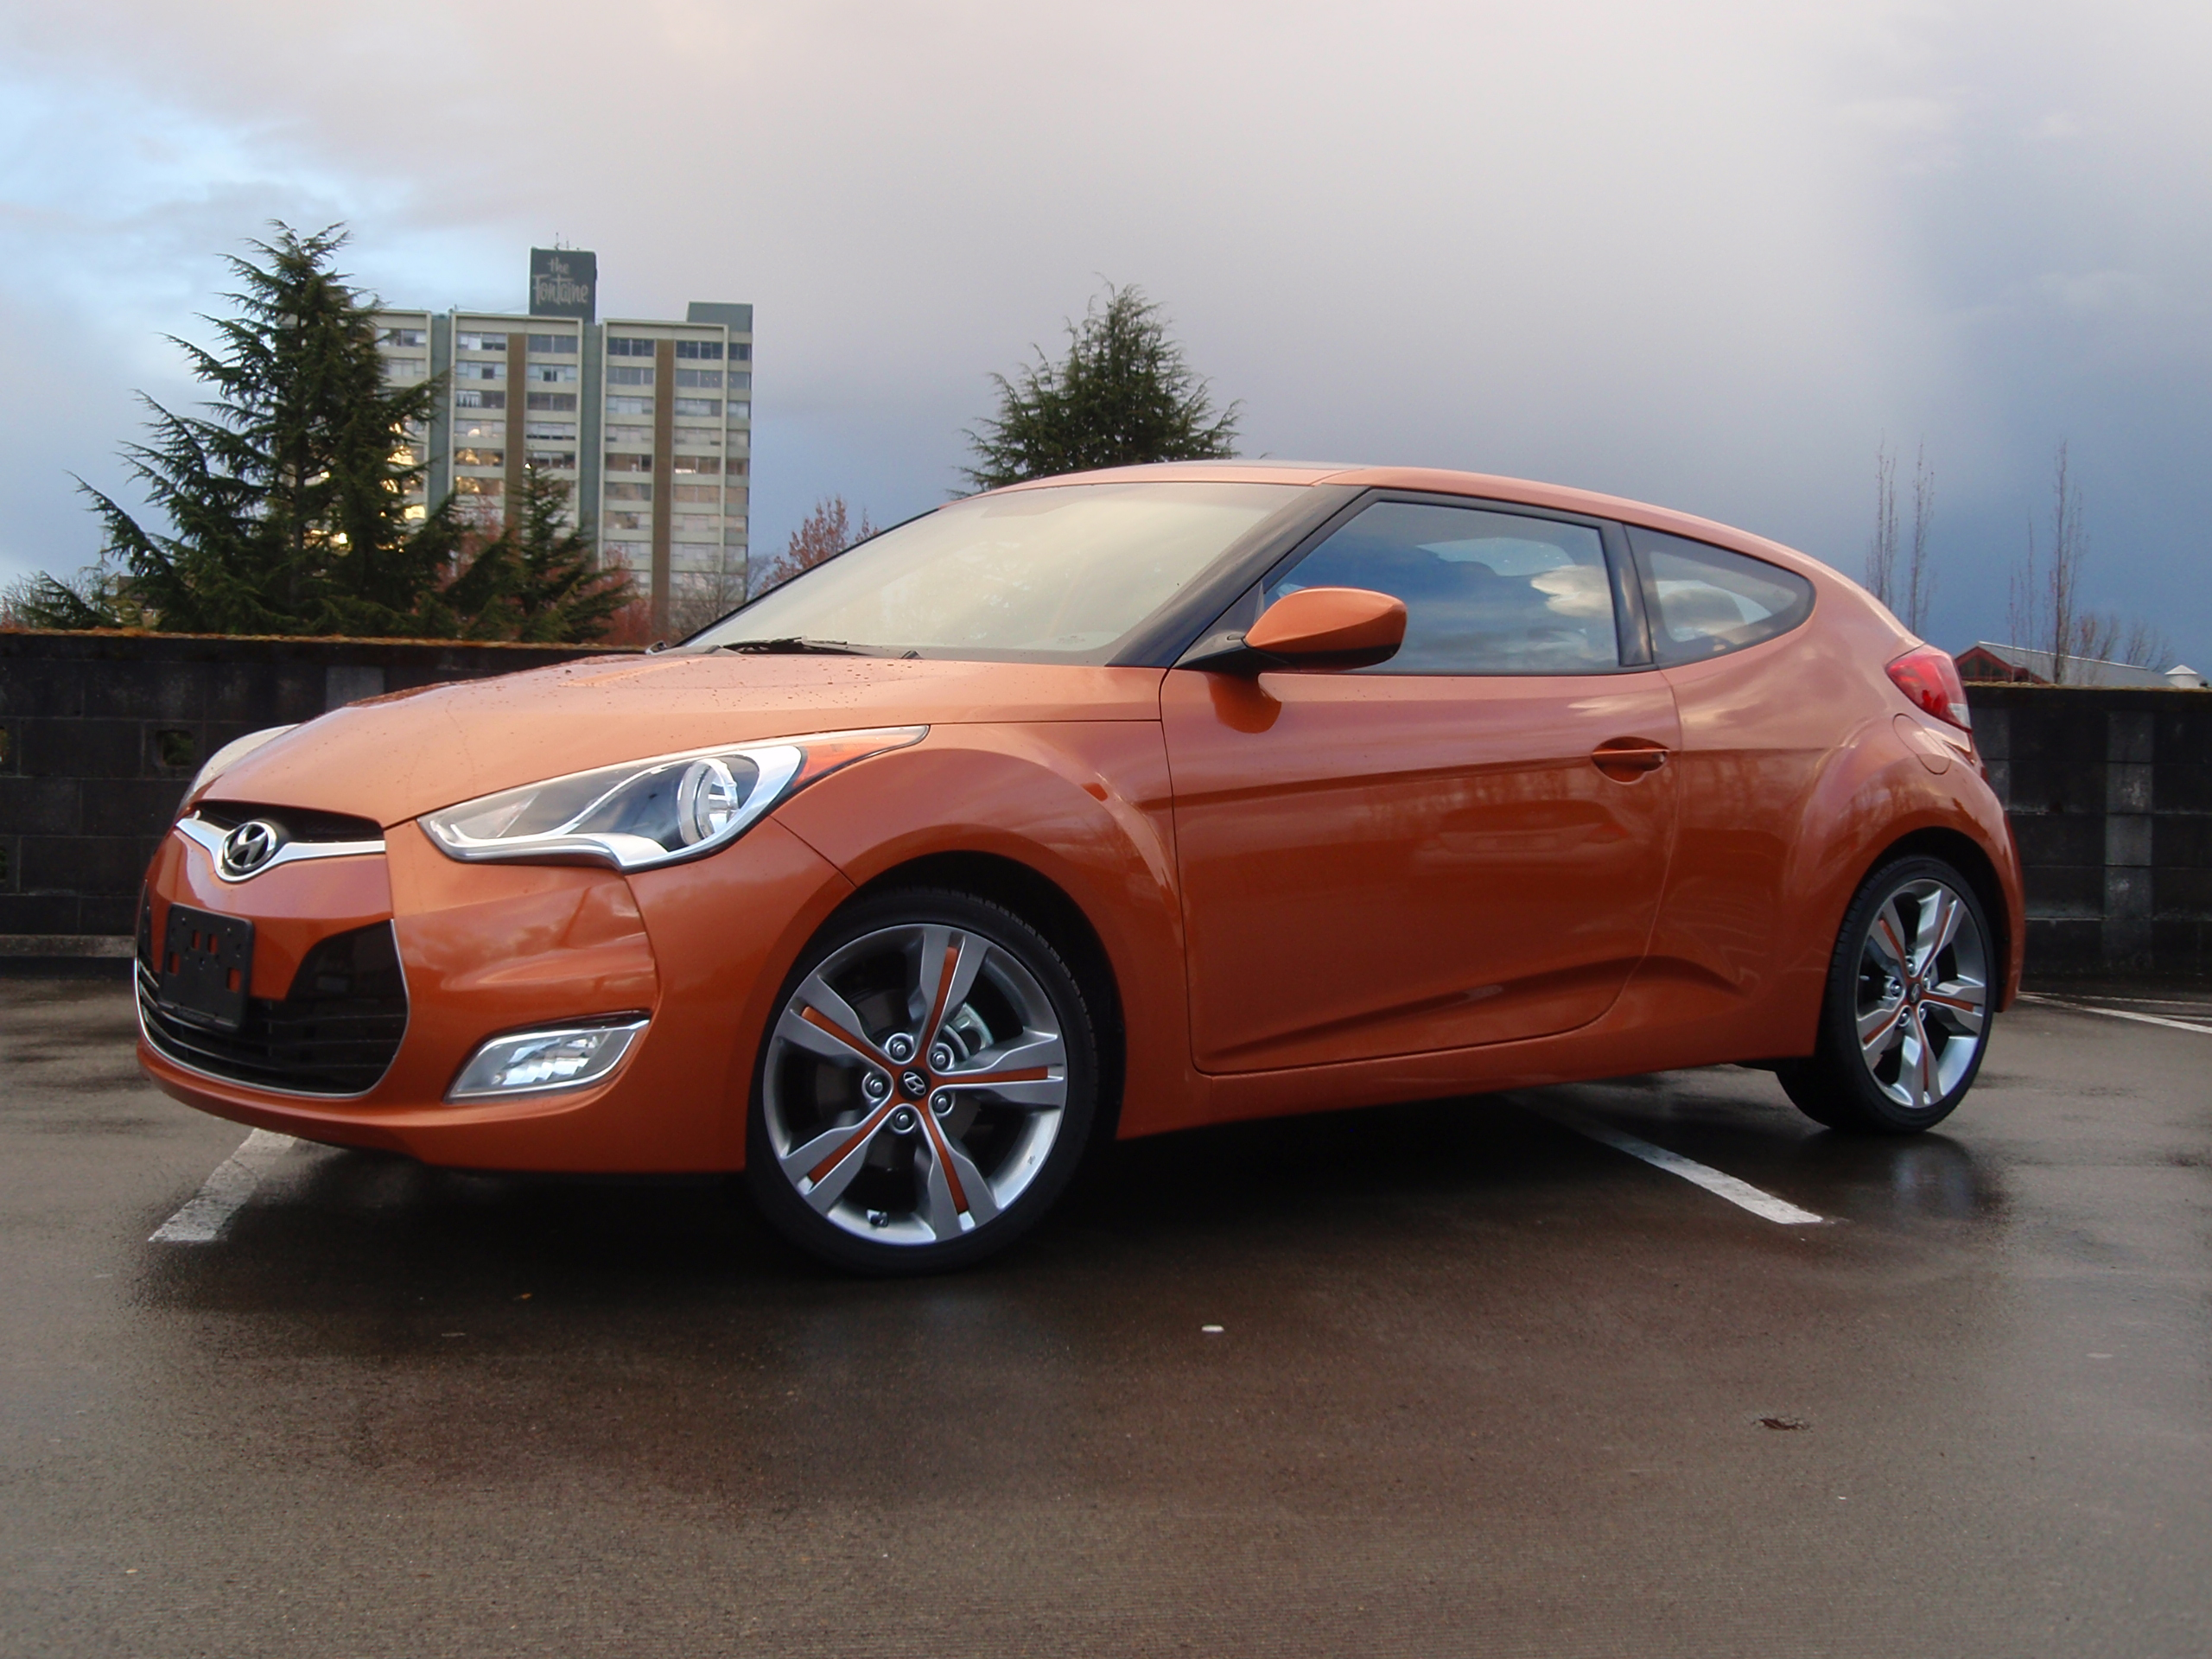 2012 Hyundai Veloster Models Recalled For Sunroof Flaw